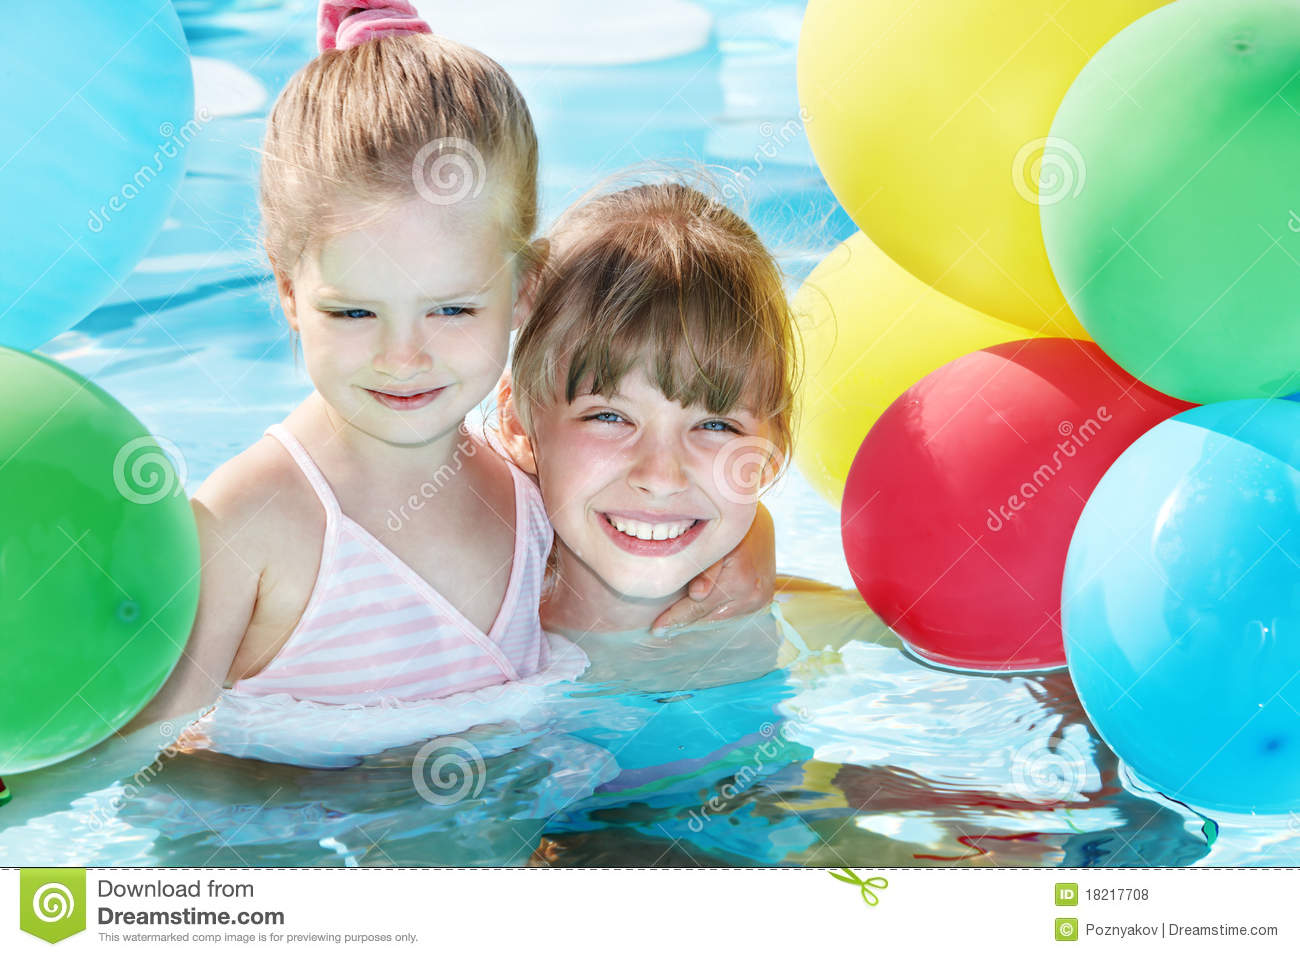 Children Playing With Balloons In Swimming Pool Royalty Free Stock Photos Image 18217708